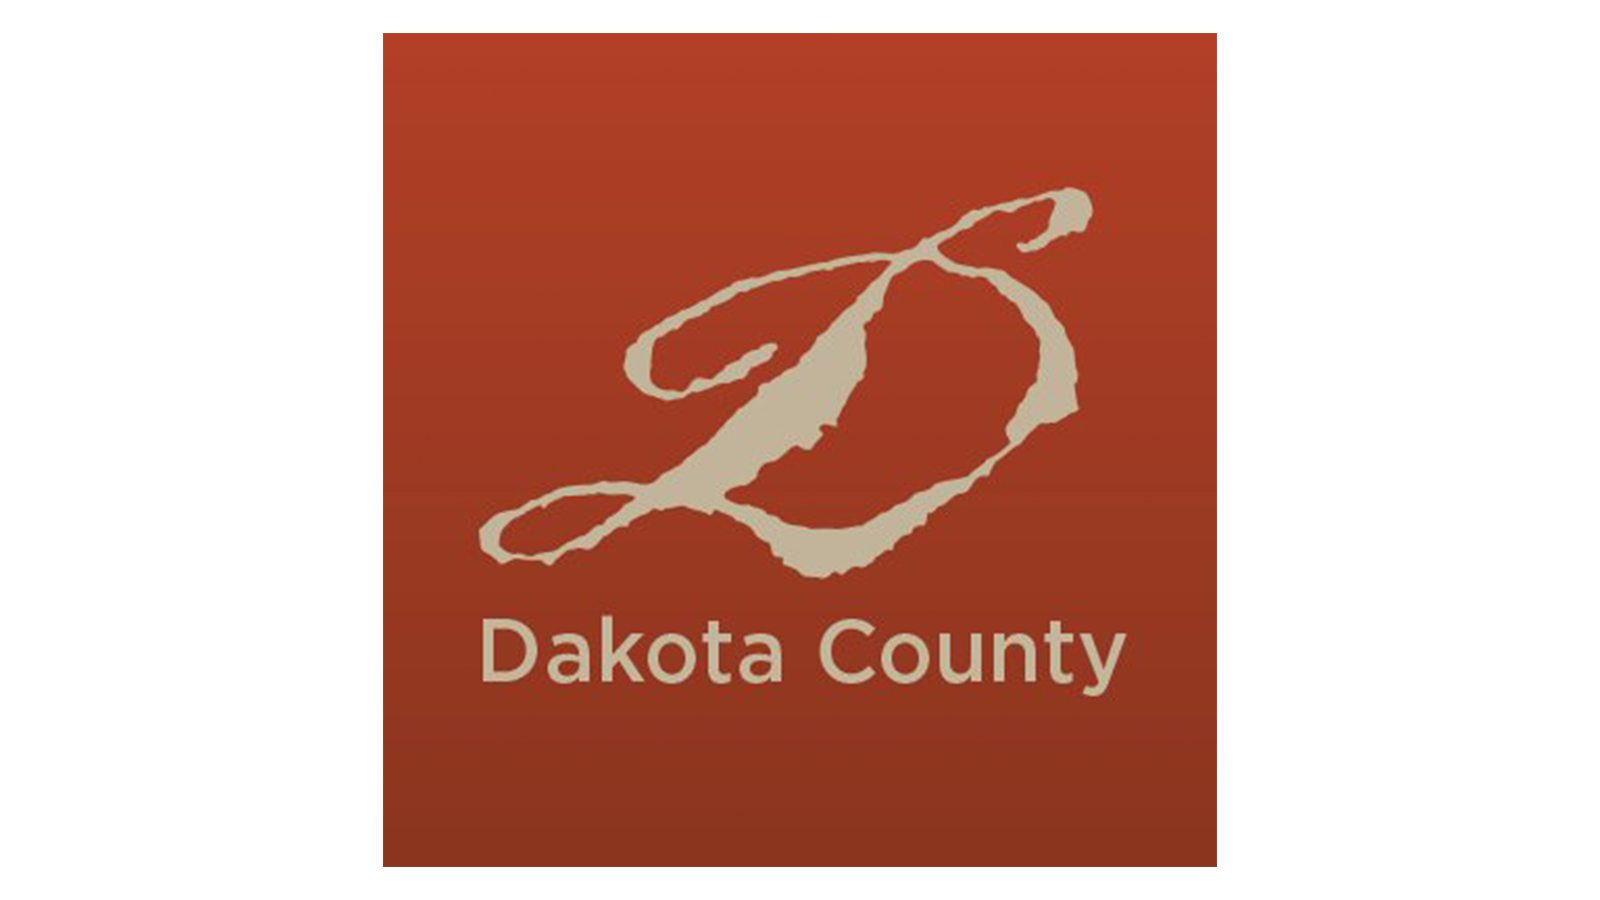 Dakota County logo